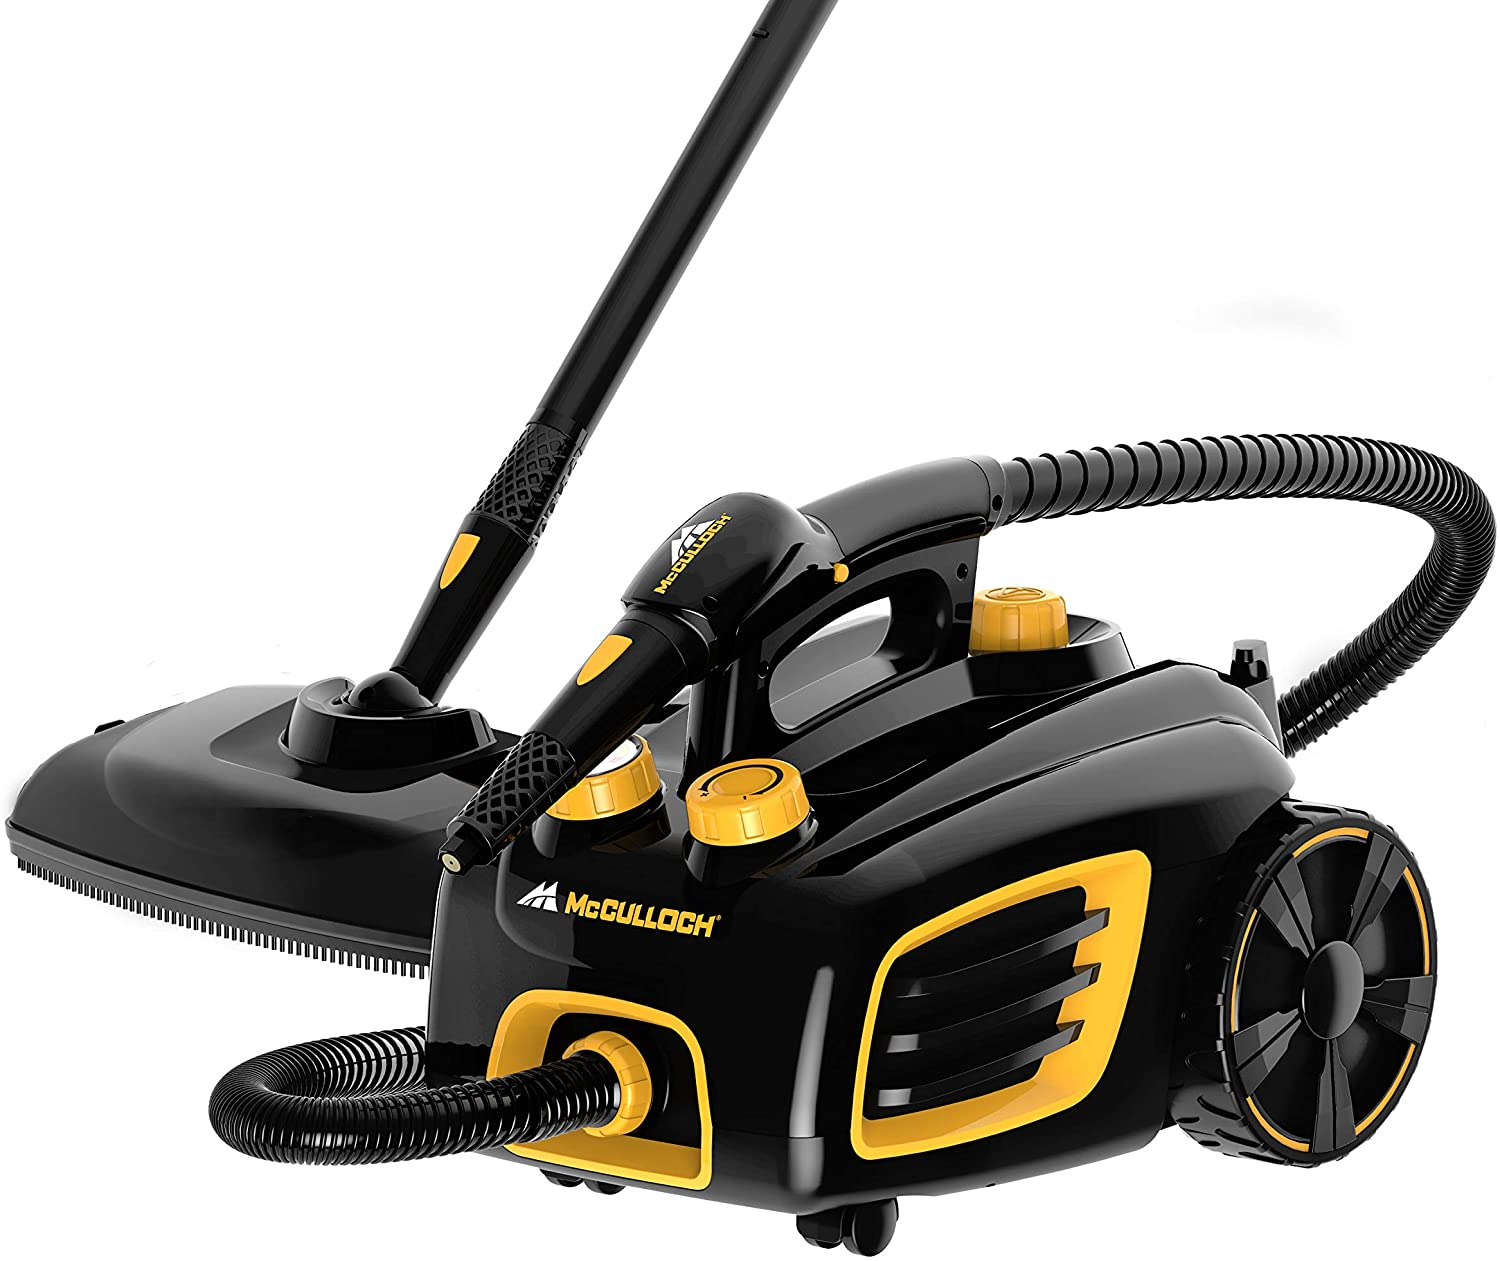 McCulloch MC1375 Canister Steam Cleaner with 20 Accessories, Extra-Long Power Cord, Chemical-Free Cleaning for Most Floors